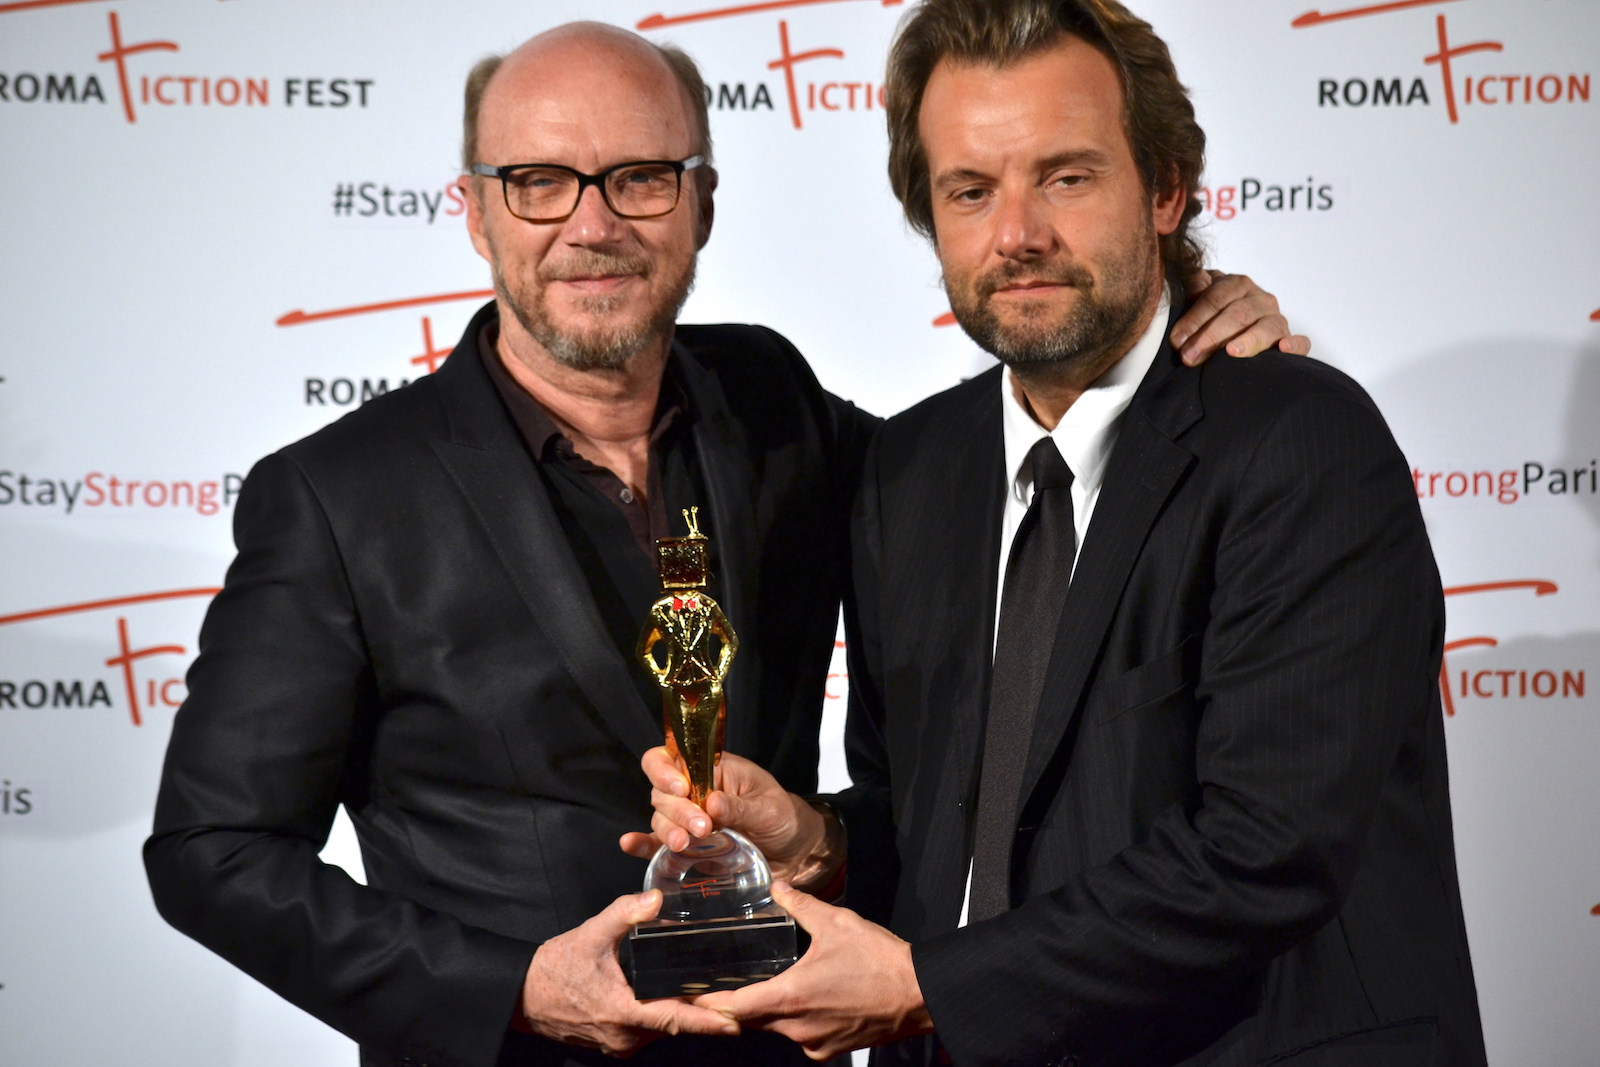 Roma Fiction Fest 2015: Paul Haggis ritira l'excellence award